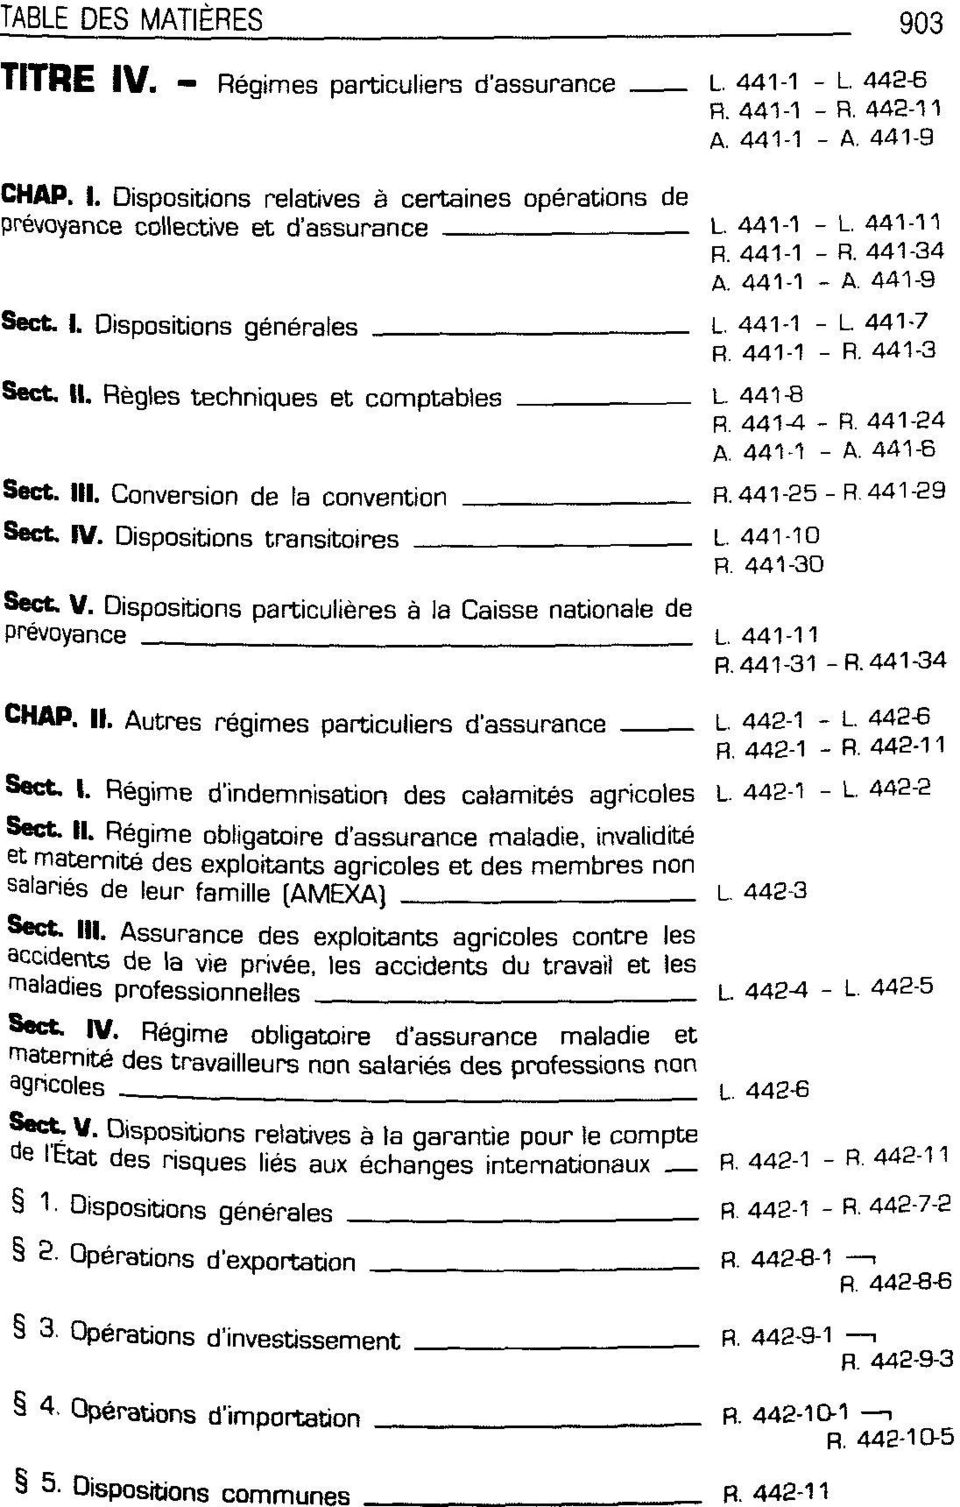 III. Conversion de la Convention R. 441-25 - R. 441-29 Sect IV. Dispositions transitoires L. 441-10 R. 441-30 Sect V. Dispositions particulieres ä la Caisse nationale de prevoyance L. 441-11 R.